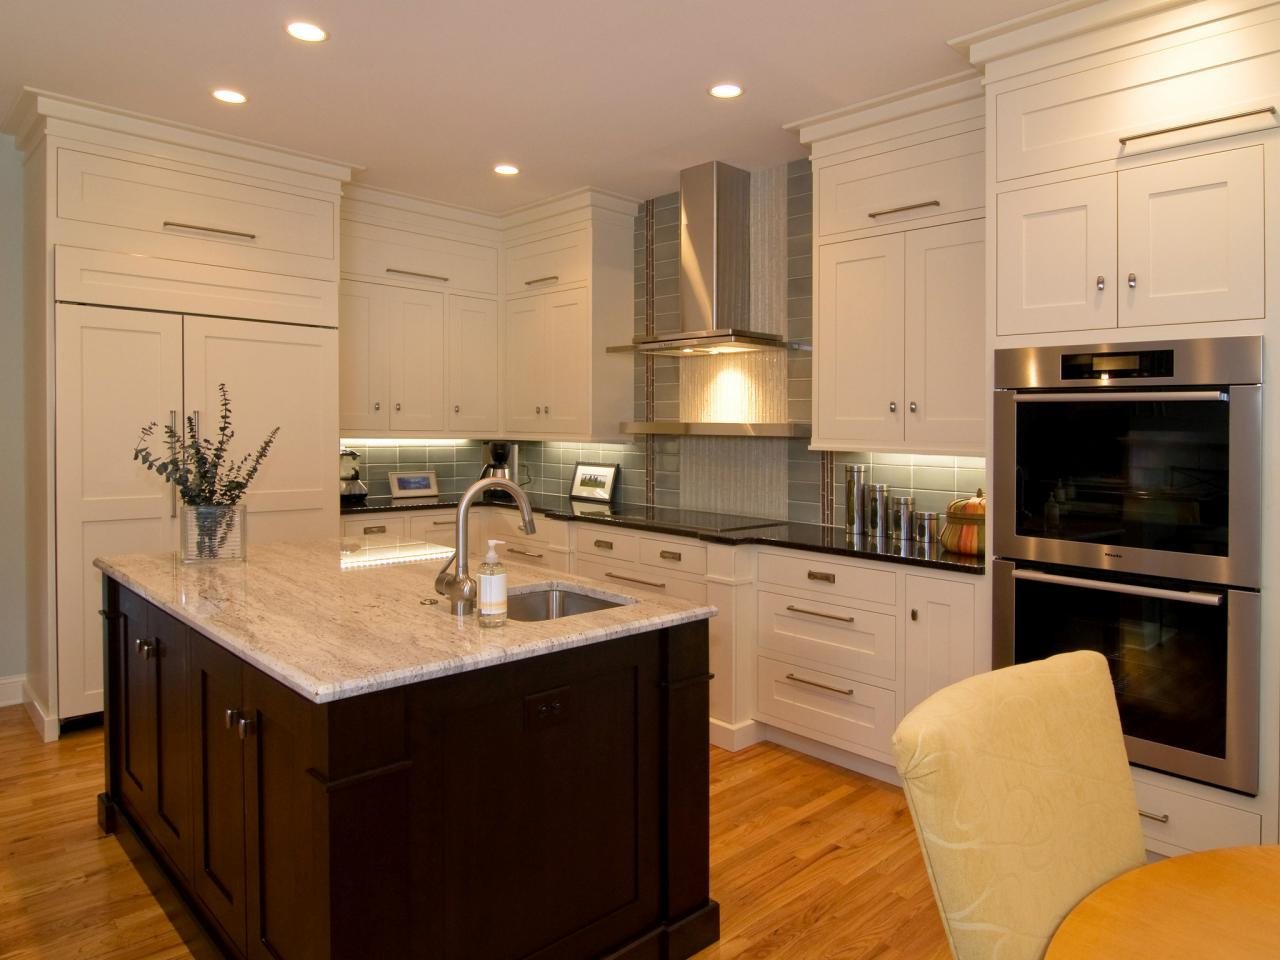 shaker kitchen cabinets: pictures, ideas & tips from hgtv | hgtv